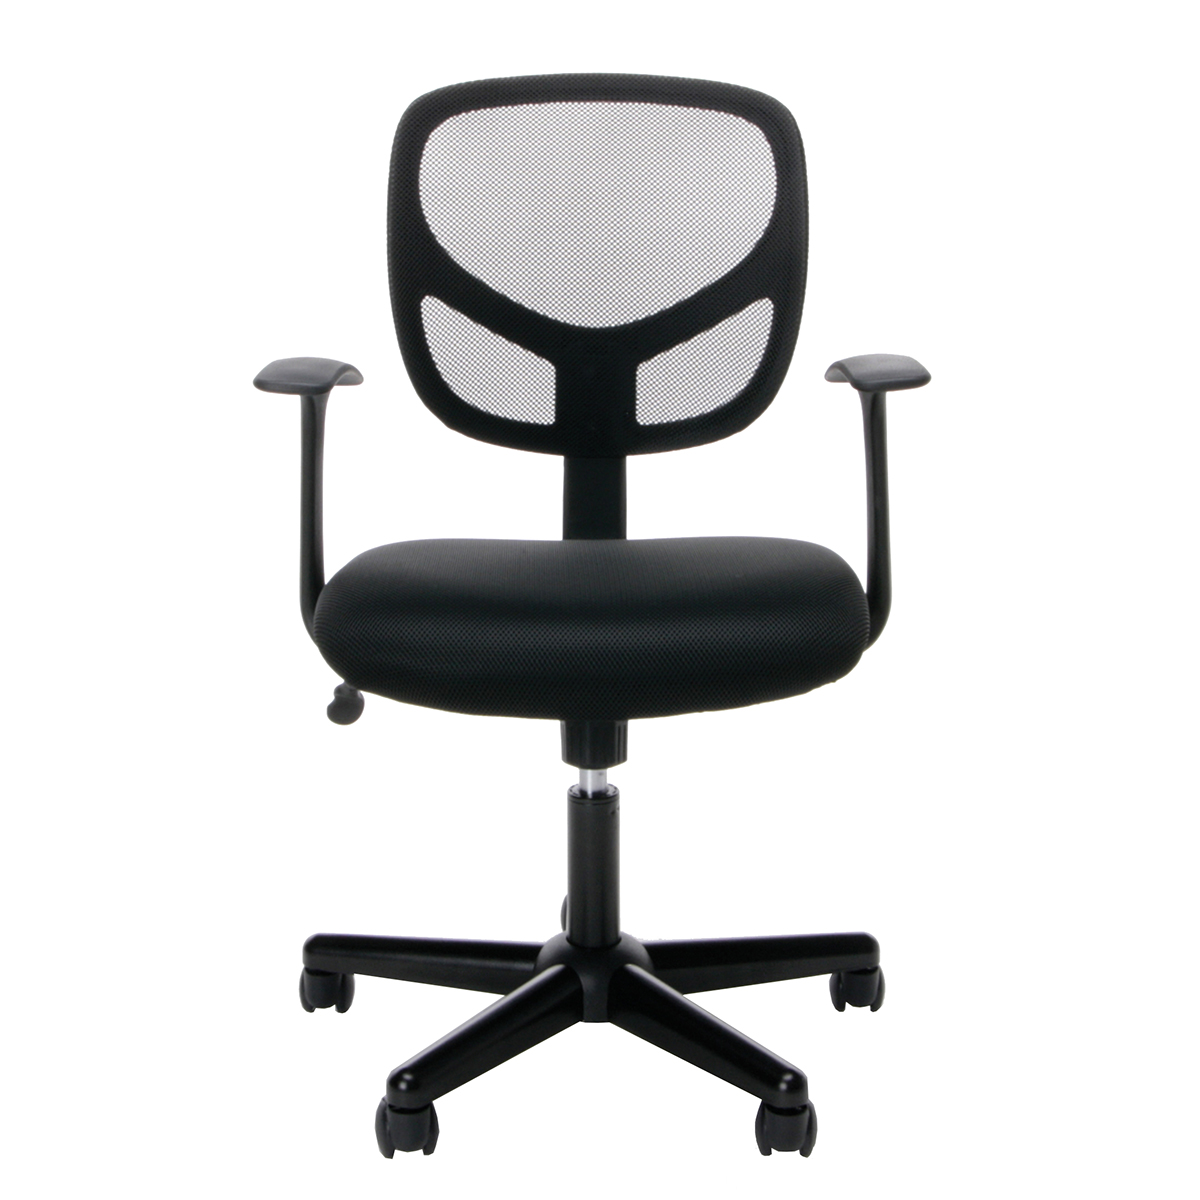 posture chair demo material dining chairs uk office and task schoolsin